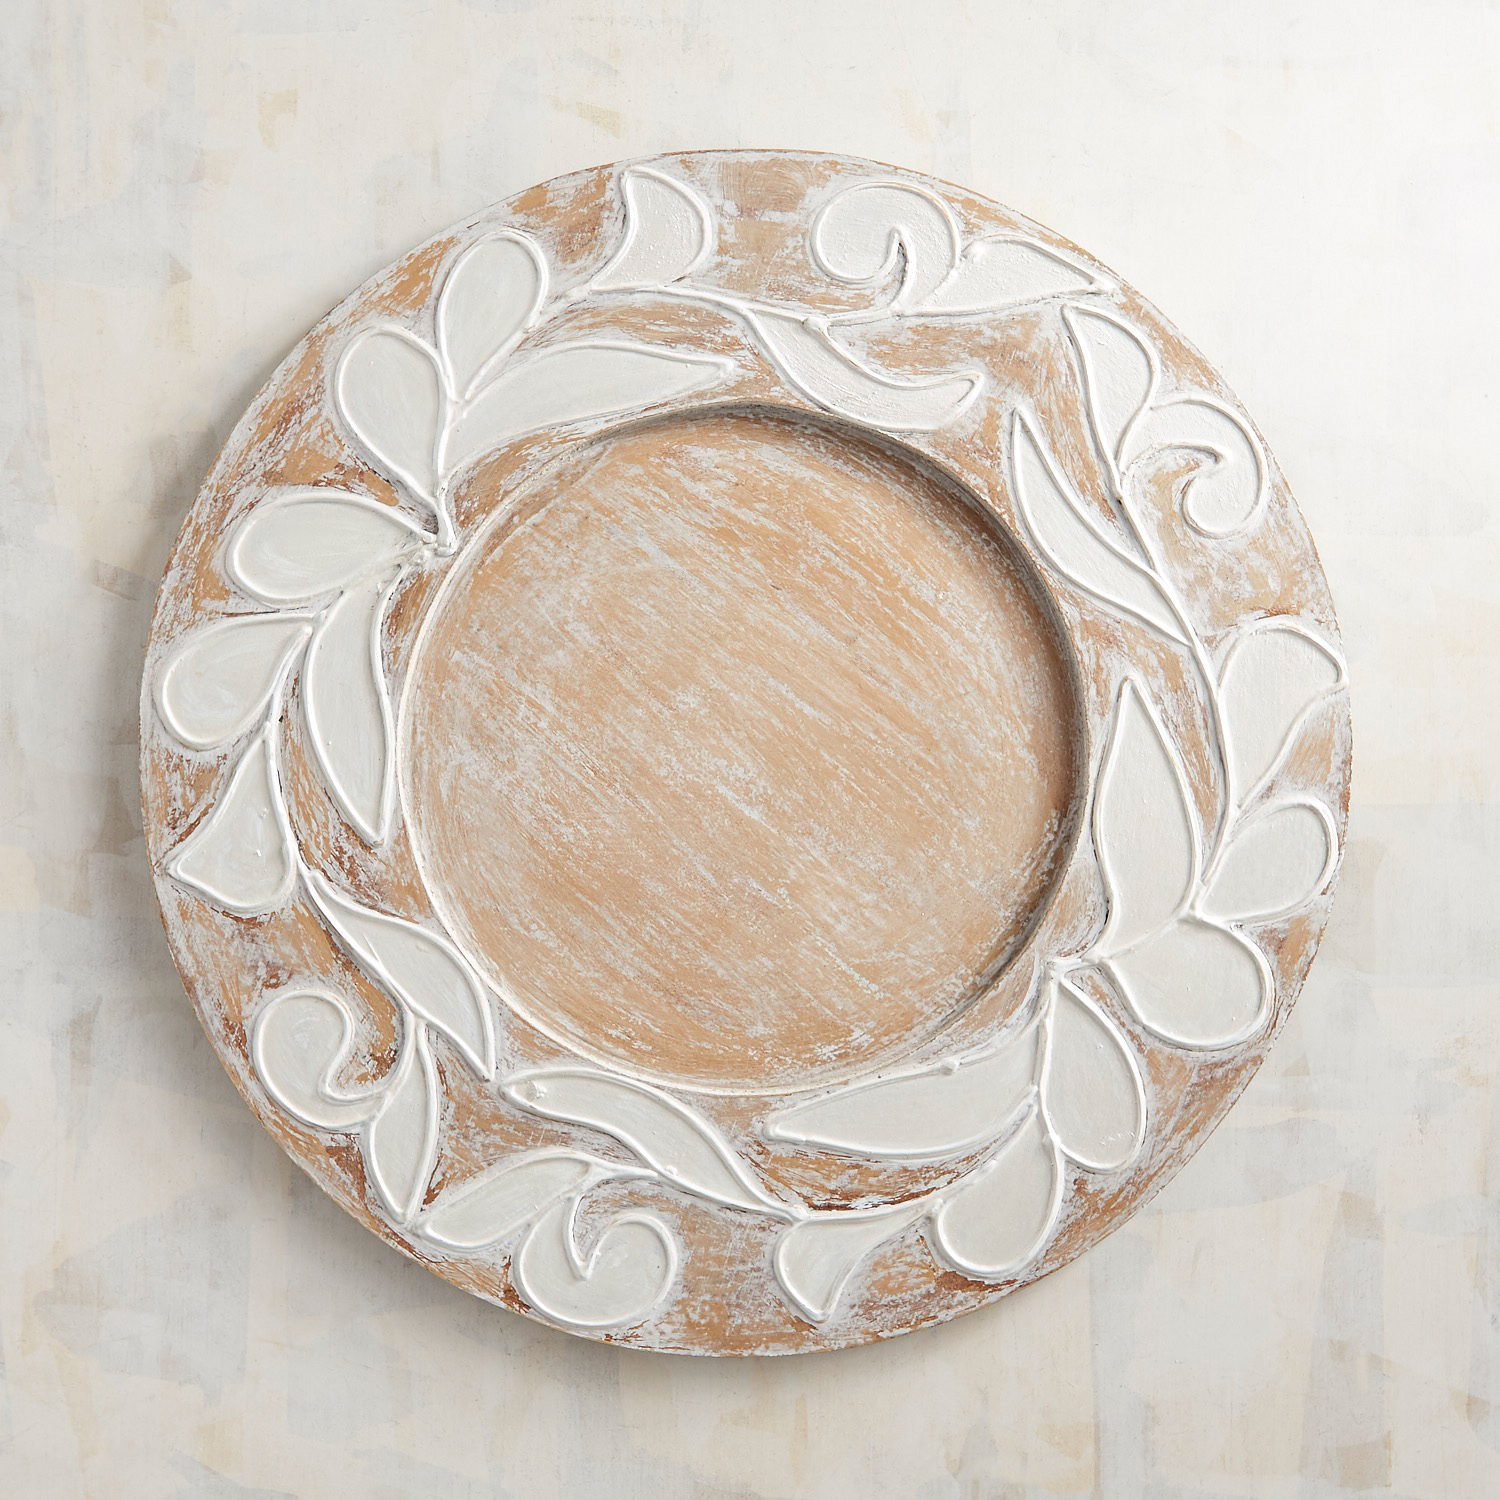 Whitewashed Painted Filigree Wooden Charger Plate